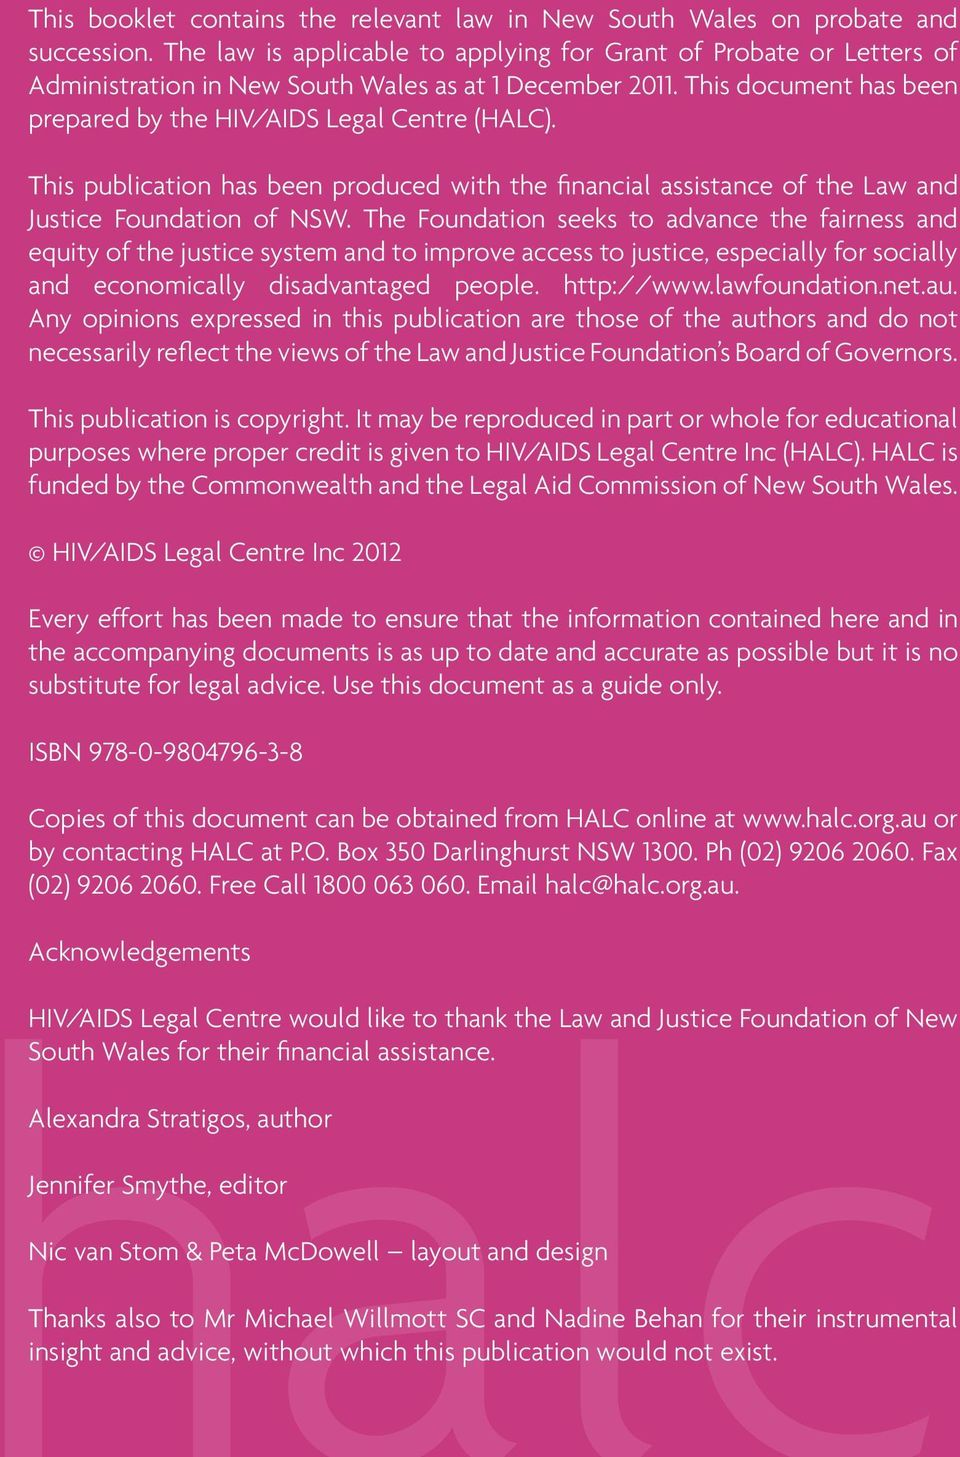 This publication has been produced with the financial assistance of the Law and Justice Foundation of NSW.